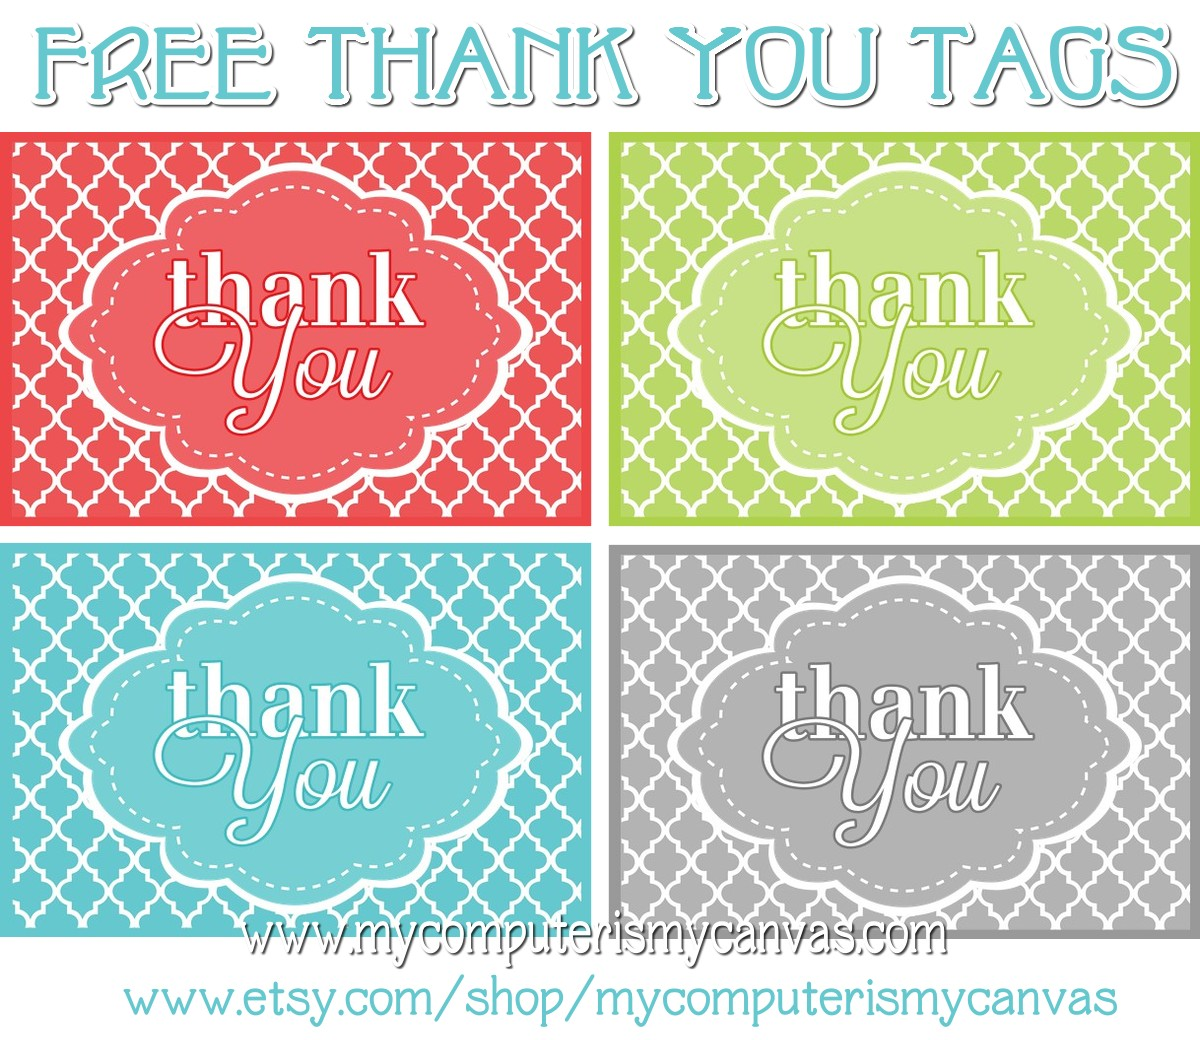 my computer is my canvas   freebie  printable thank you tags